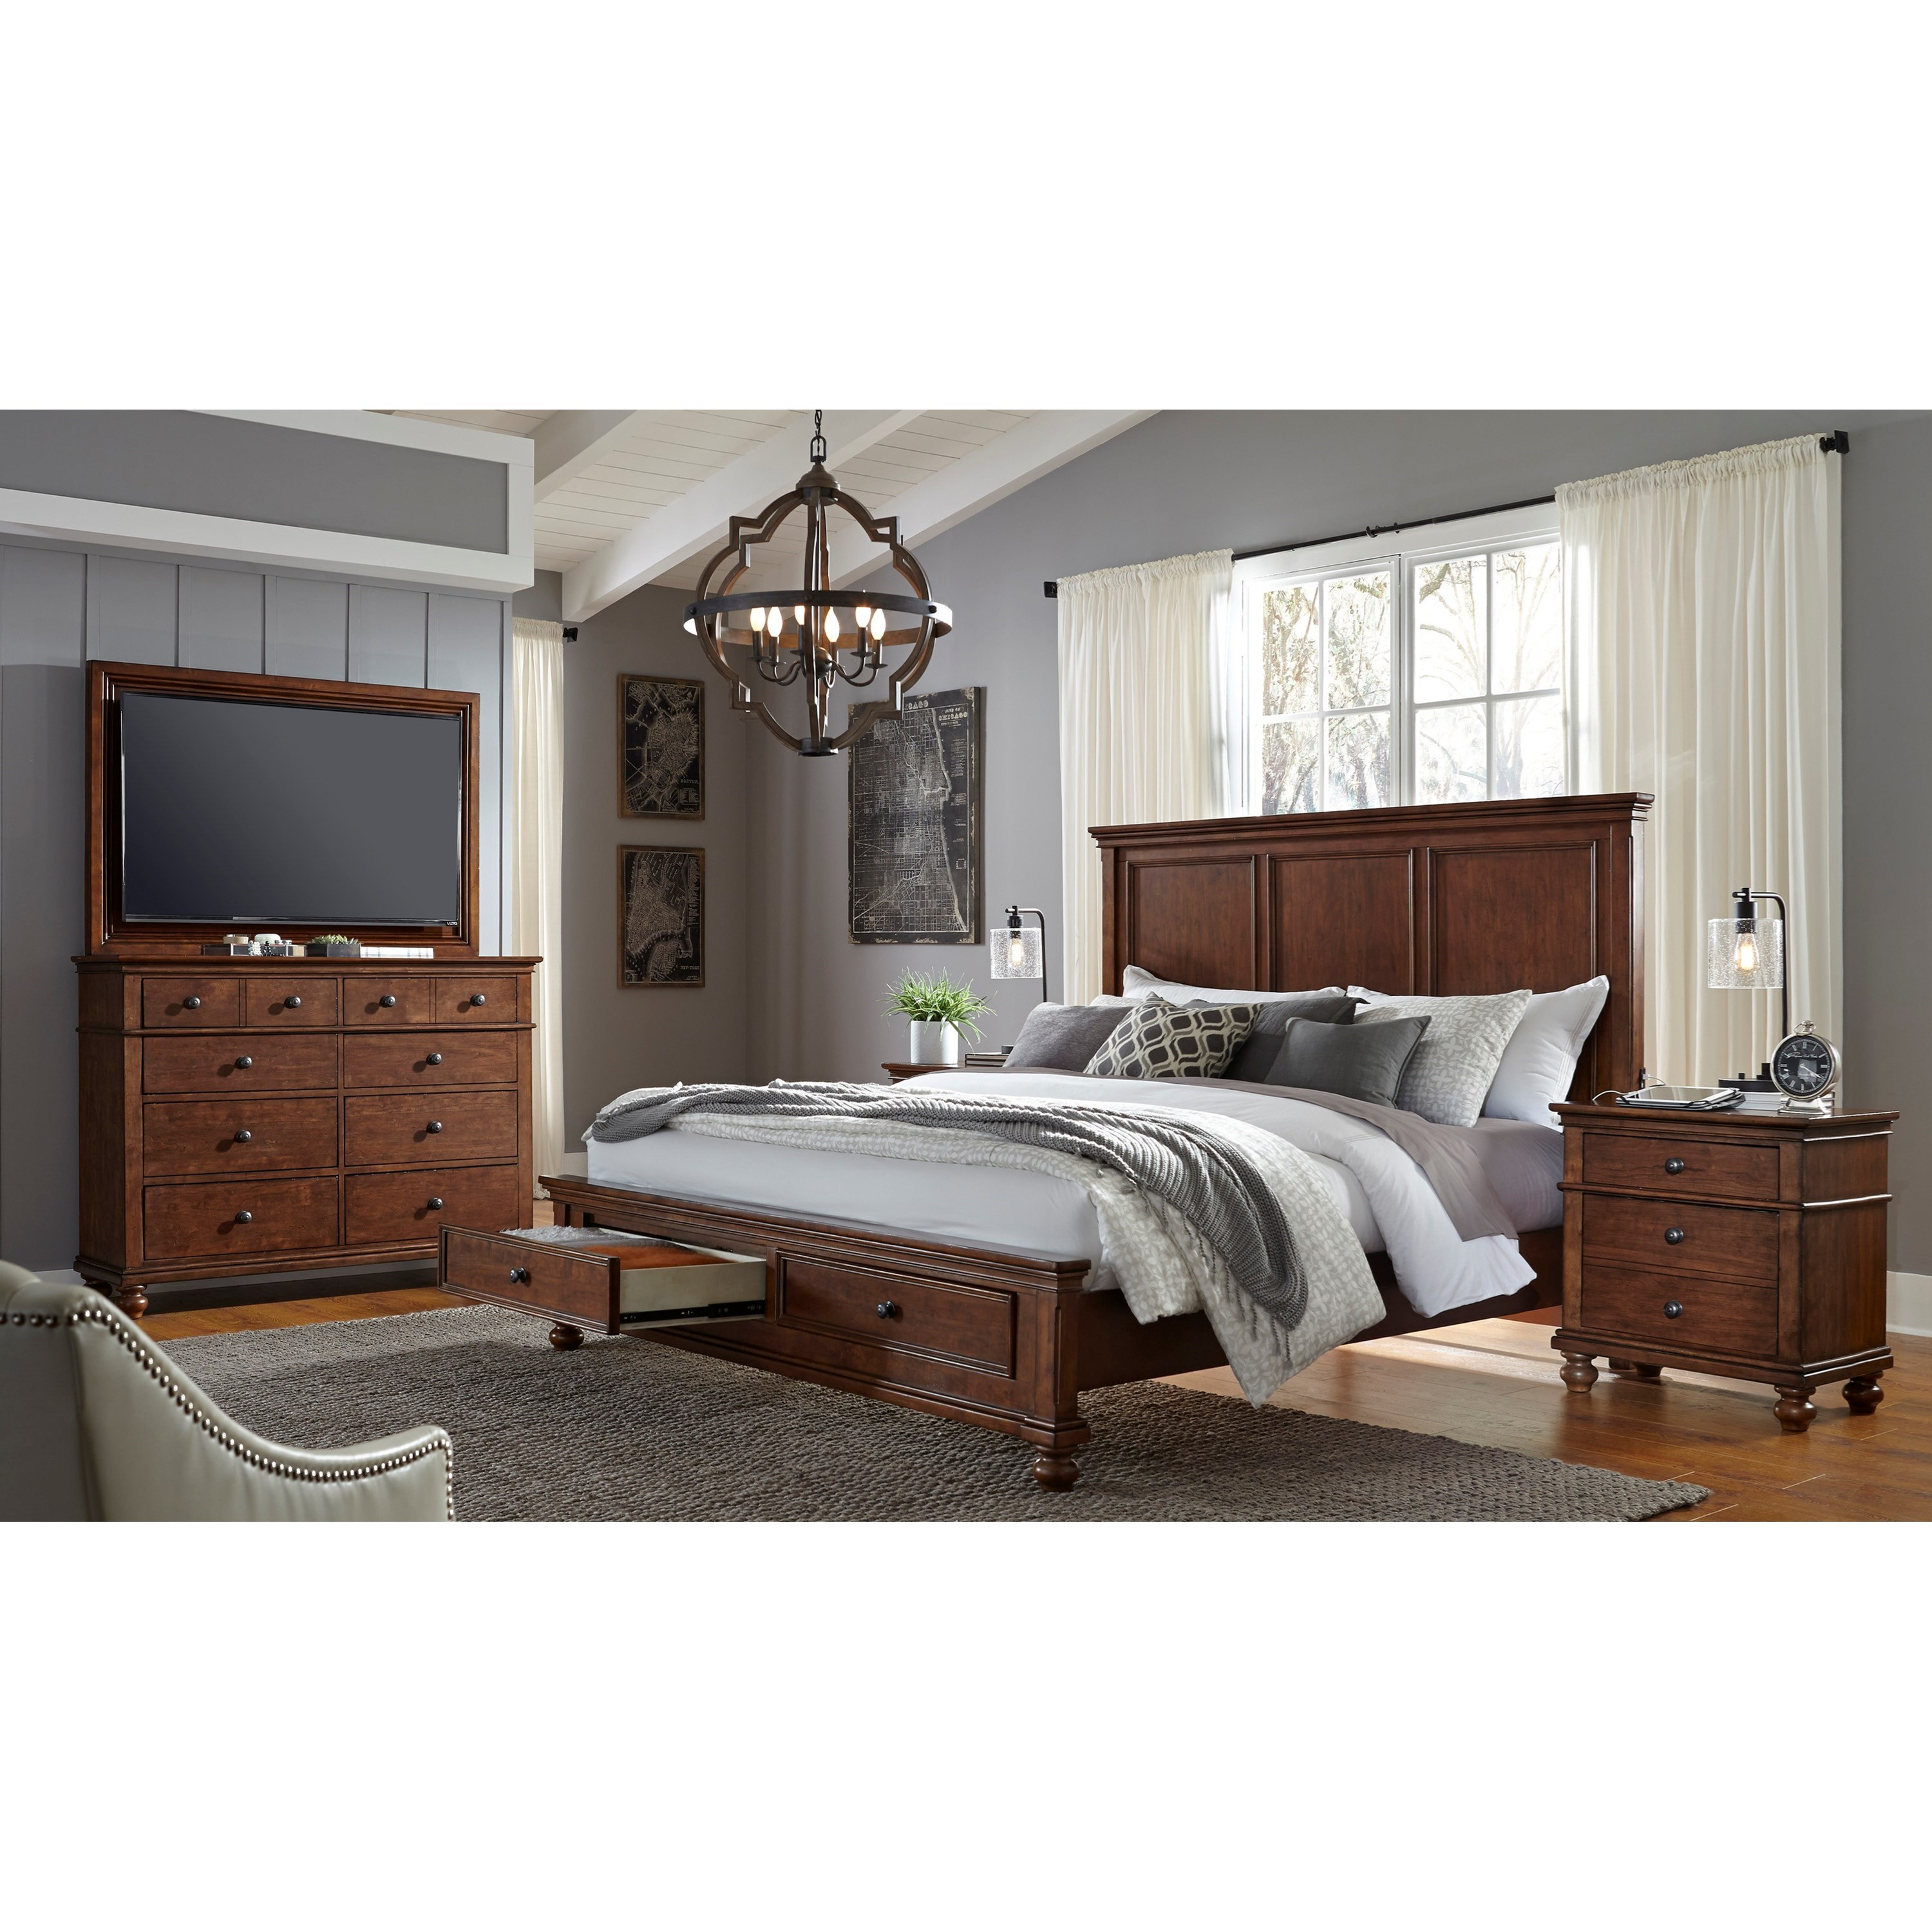 Oxford King Bedroom Group by Aspenhome at Baer's Furniture